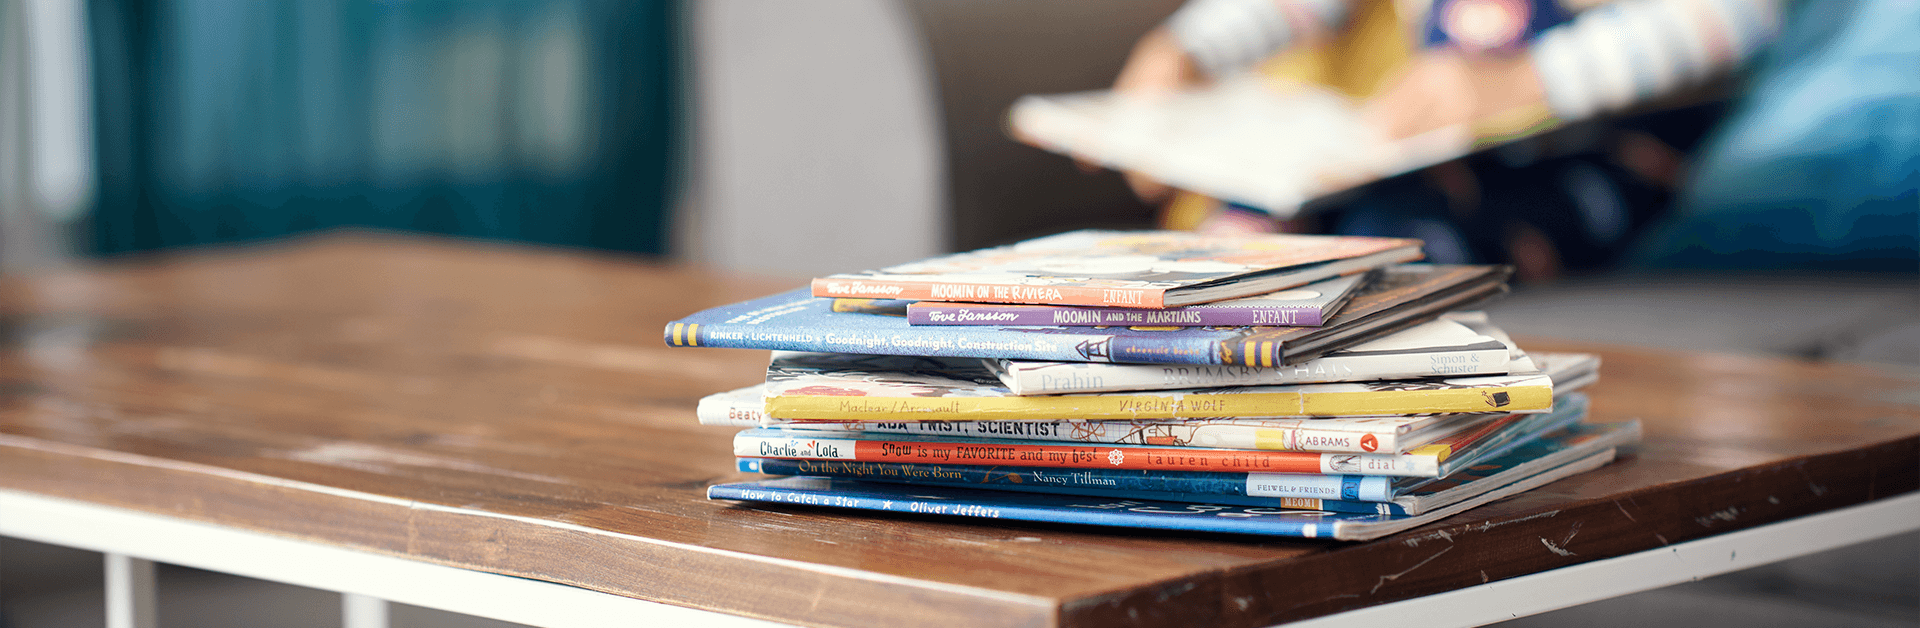 A stack of books on a table and a boy reading a book on a couch in the distance.